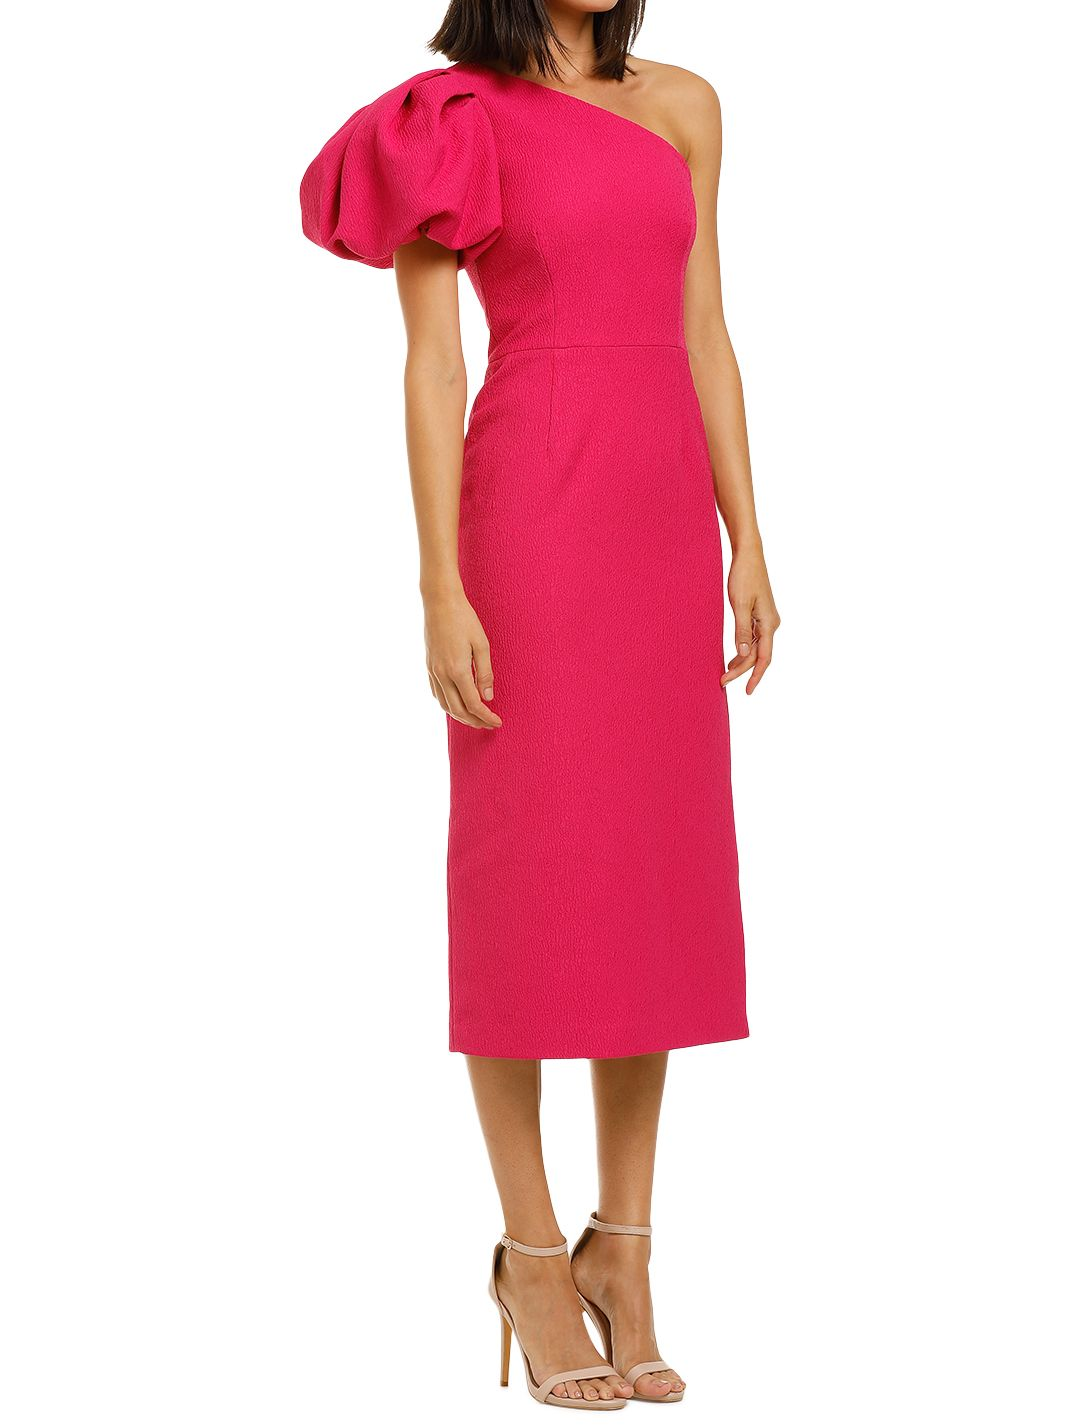 Rebecca-Vallance-Natalia-One-Sleeve-Midi-Dress-Magenta-Side